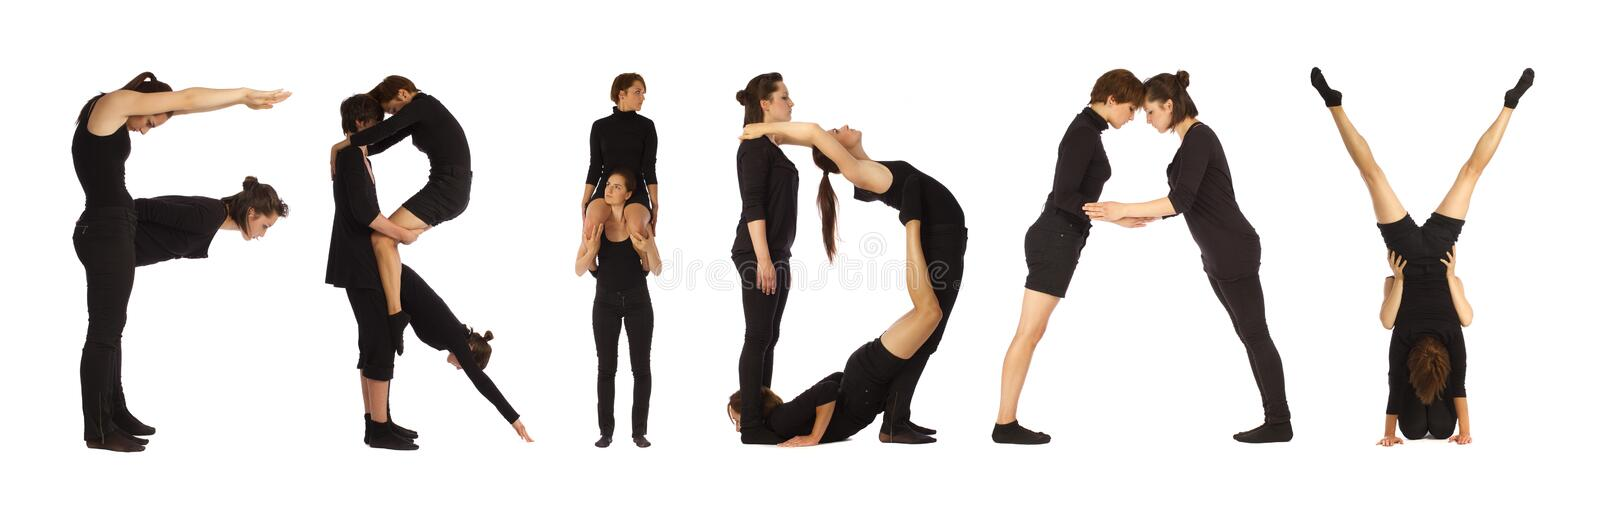 Black dressed people forming word FRIDAY stock photography